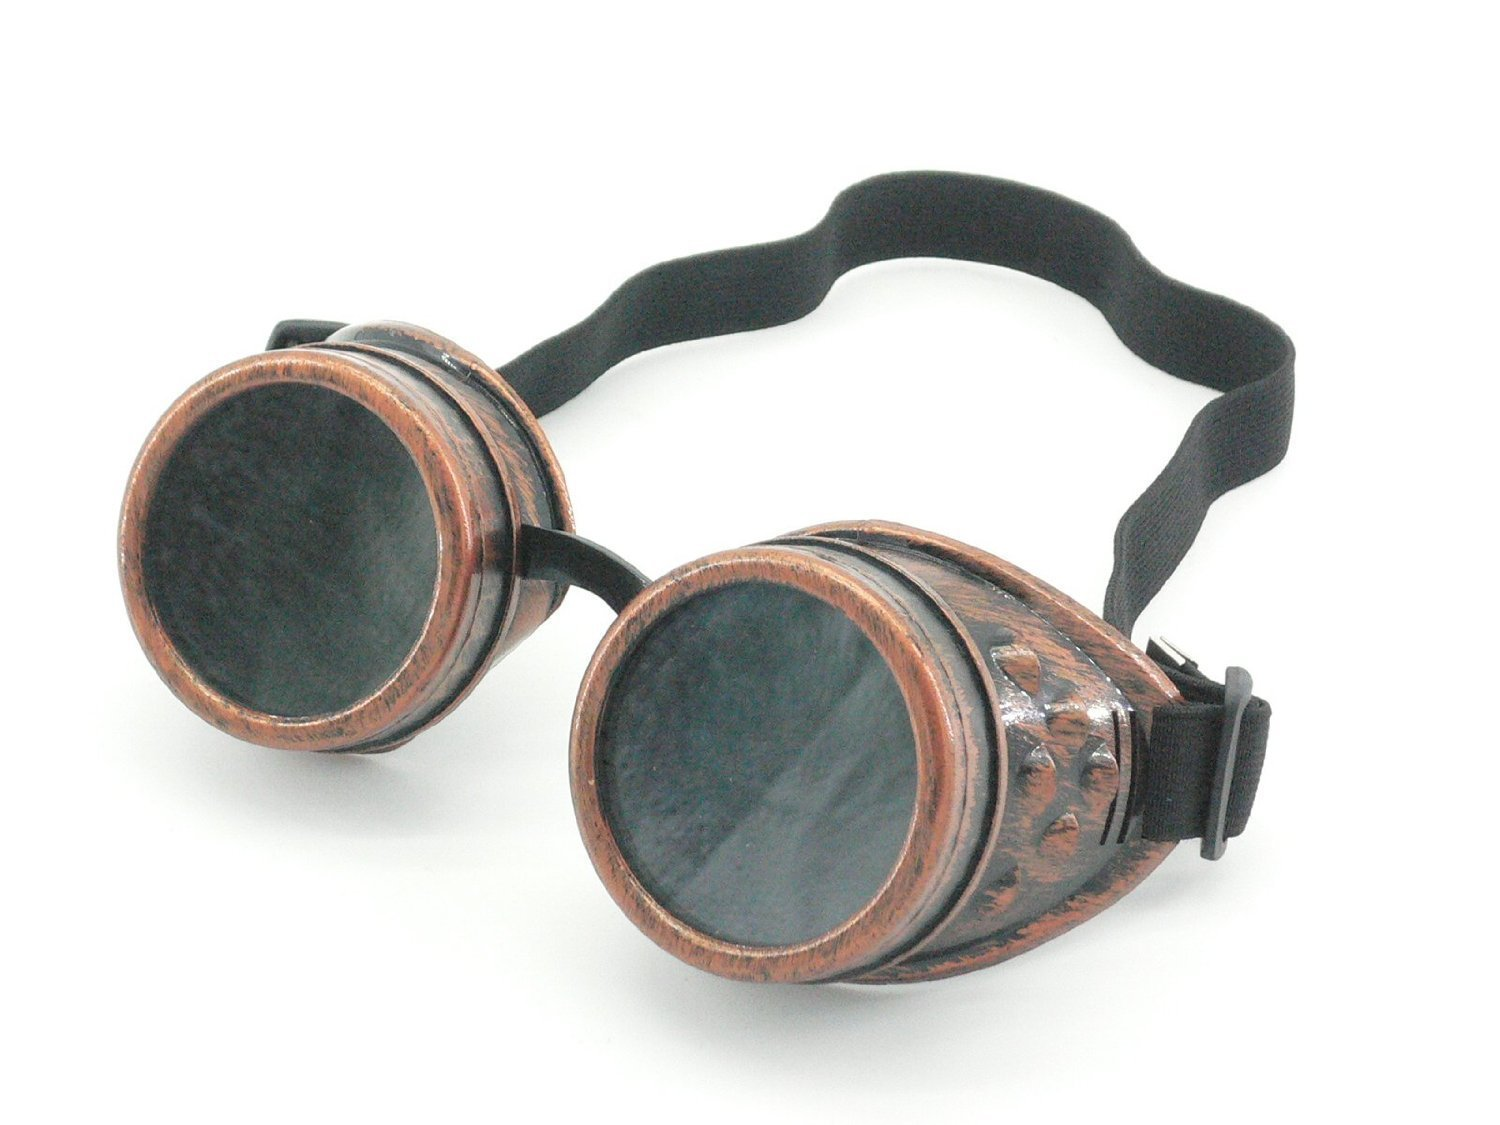 Ailan Cyber Goggles Steampunk Welding Goth Cosplay Vintage Goggles Rustic